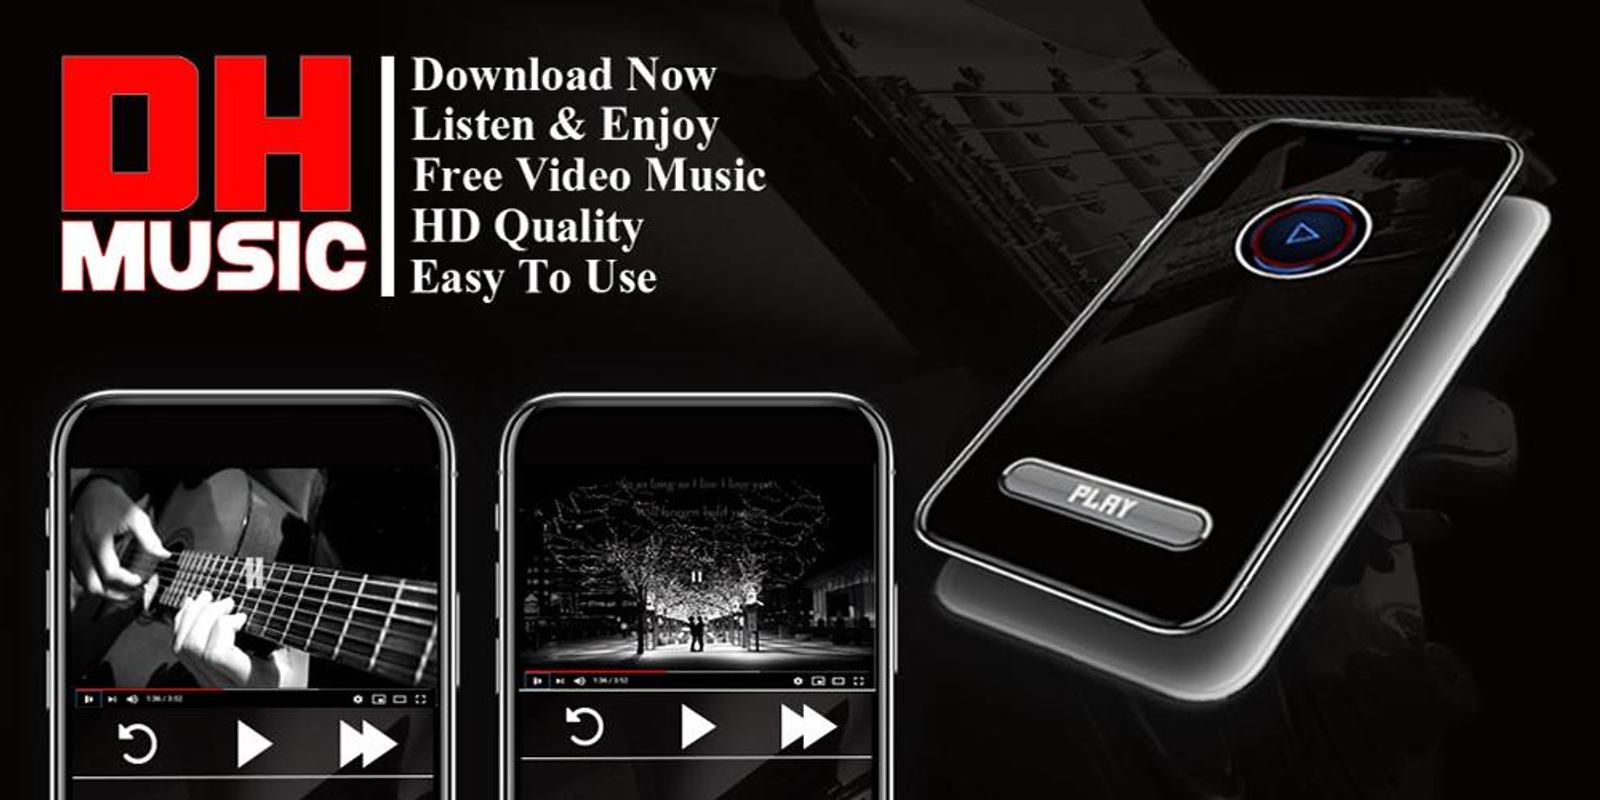 Guns N' Roses Best Song for Android - APK Download